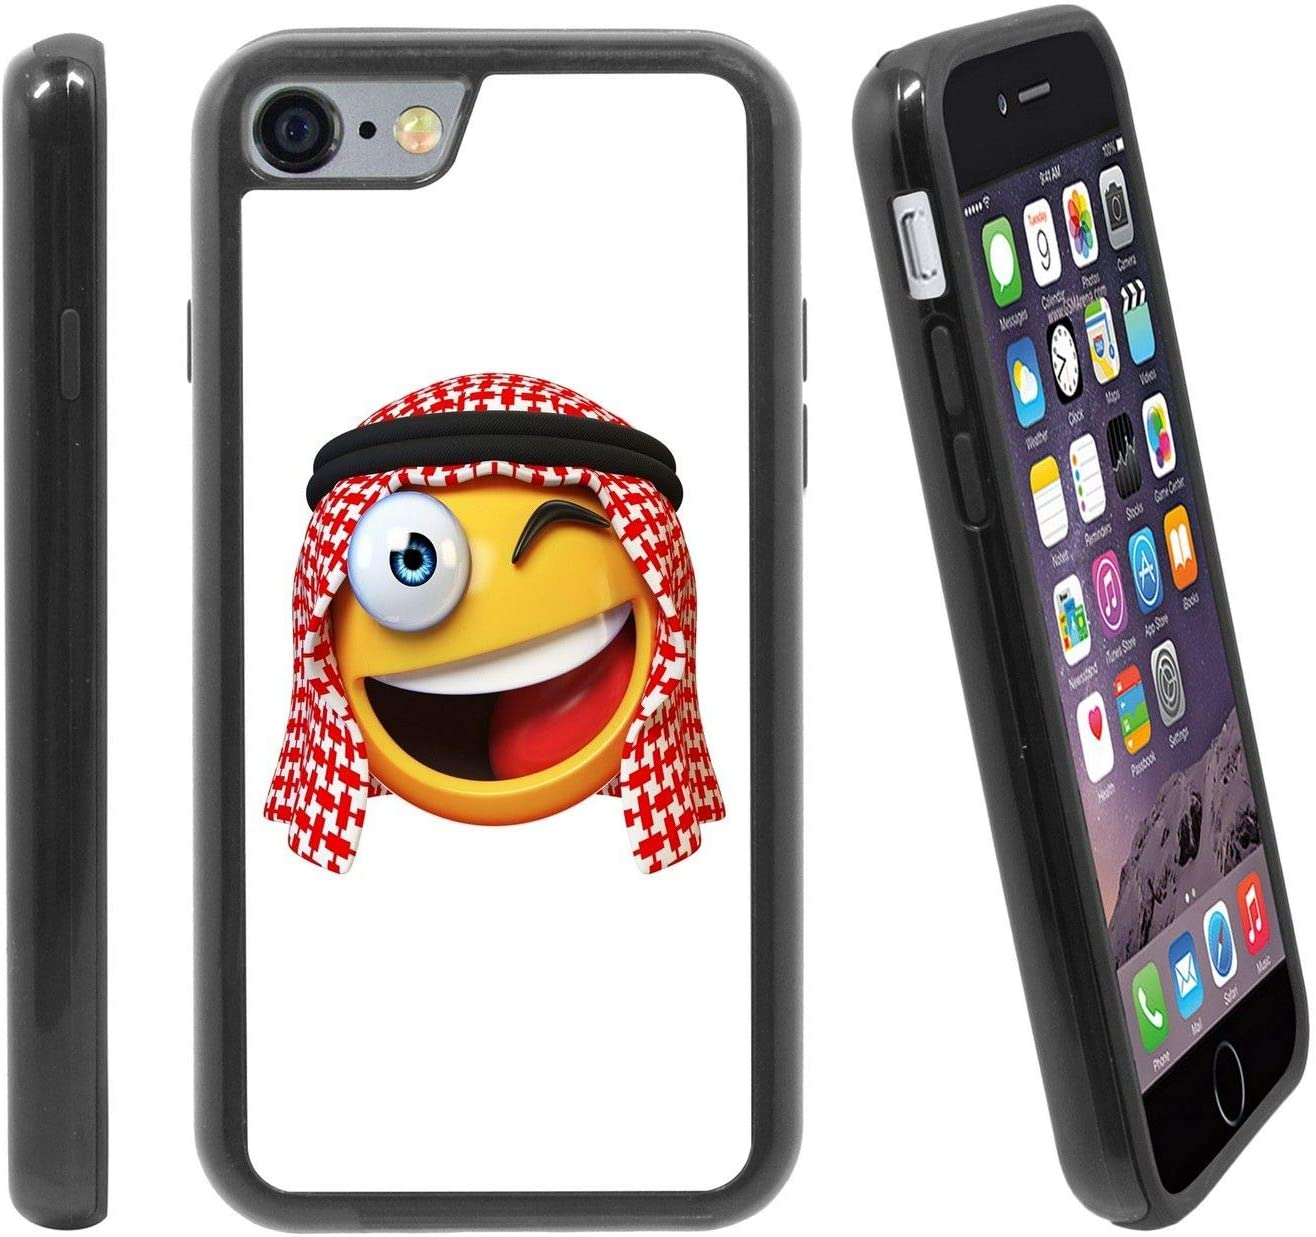 Lol Arabian Laughing Face Emoticon Emoji For Apple Iphone 6 6s 4 7 Inches Hybrid Heavy Duty Armor Shockproof Silicone Cover Rugged Case